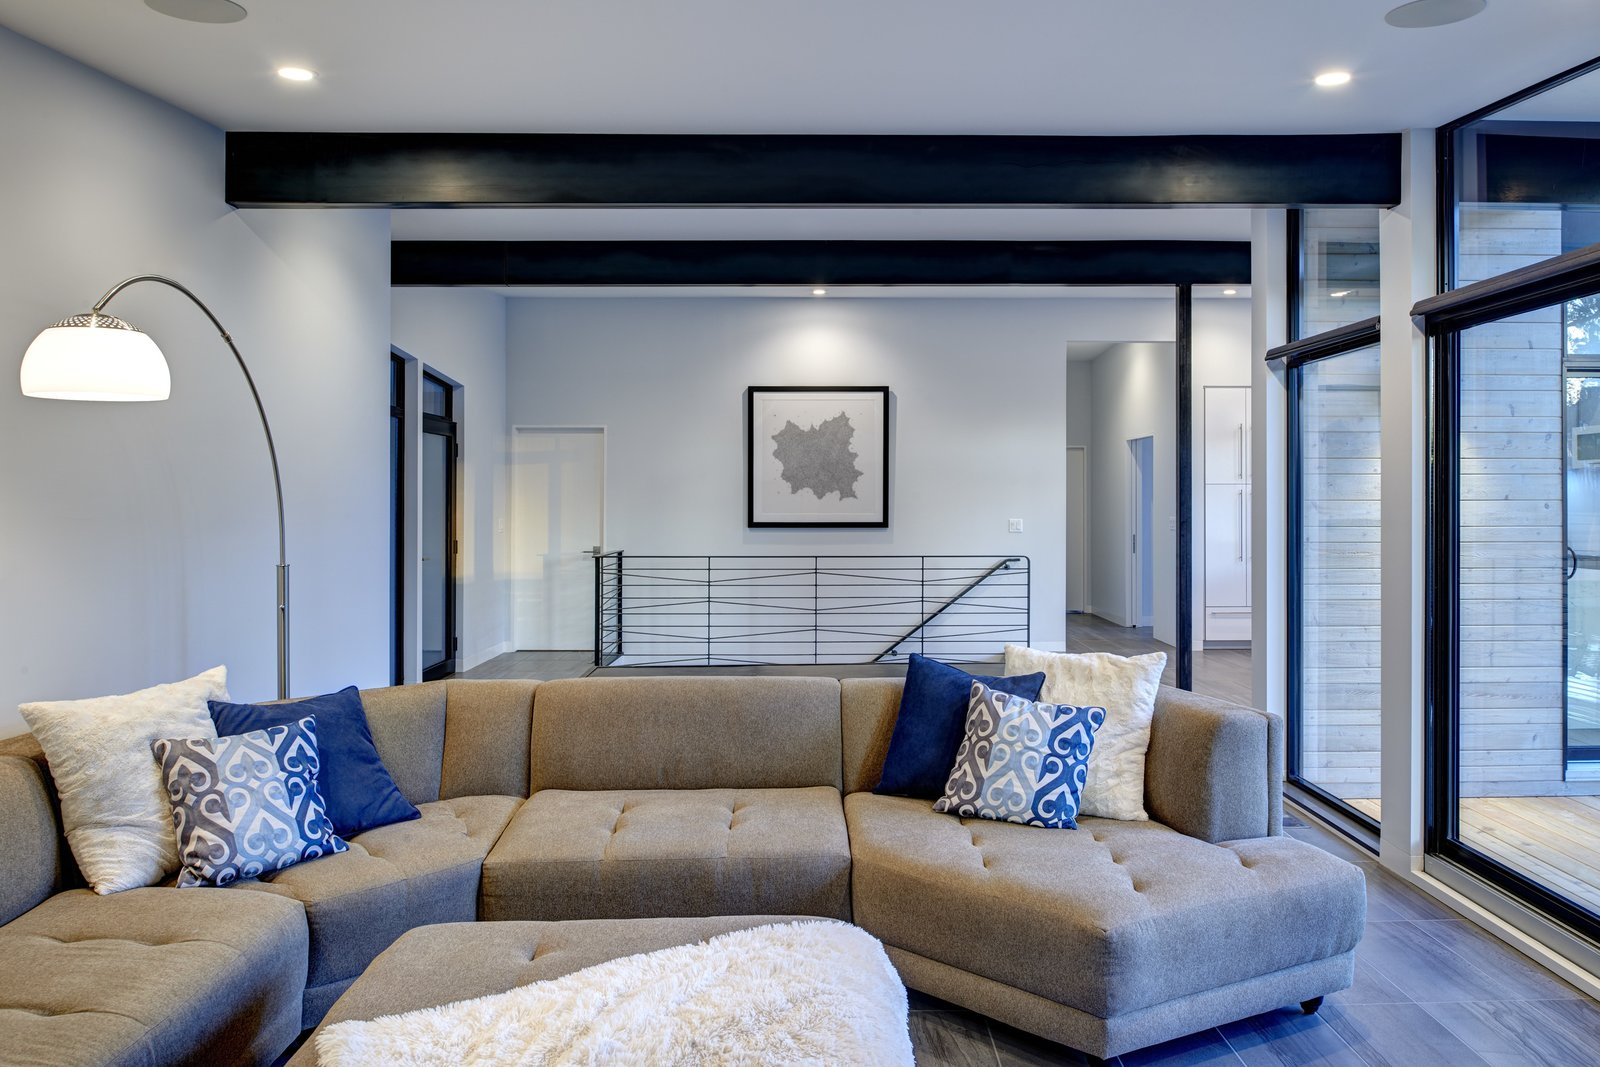 Living Room, Sofa, Ceiling Lighting, Accent Lighting, and Porcelain Tile Floor Black aluminum-covered beams and a clean white ceiling work together to pull the exterior into the living spaces.  Koser I by Neumann Monson Architects